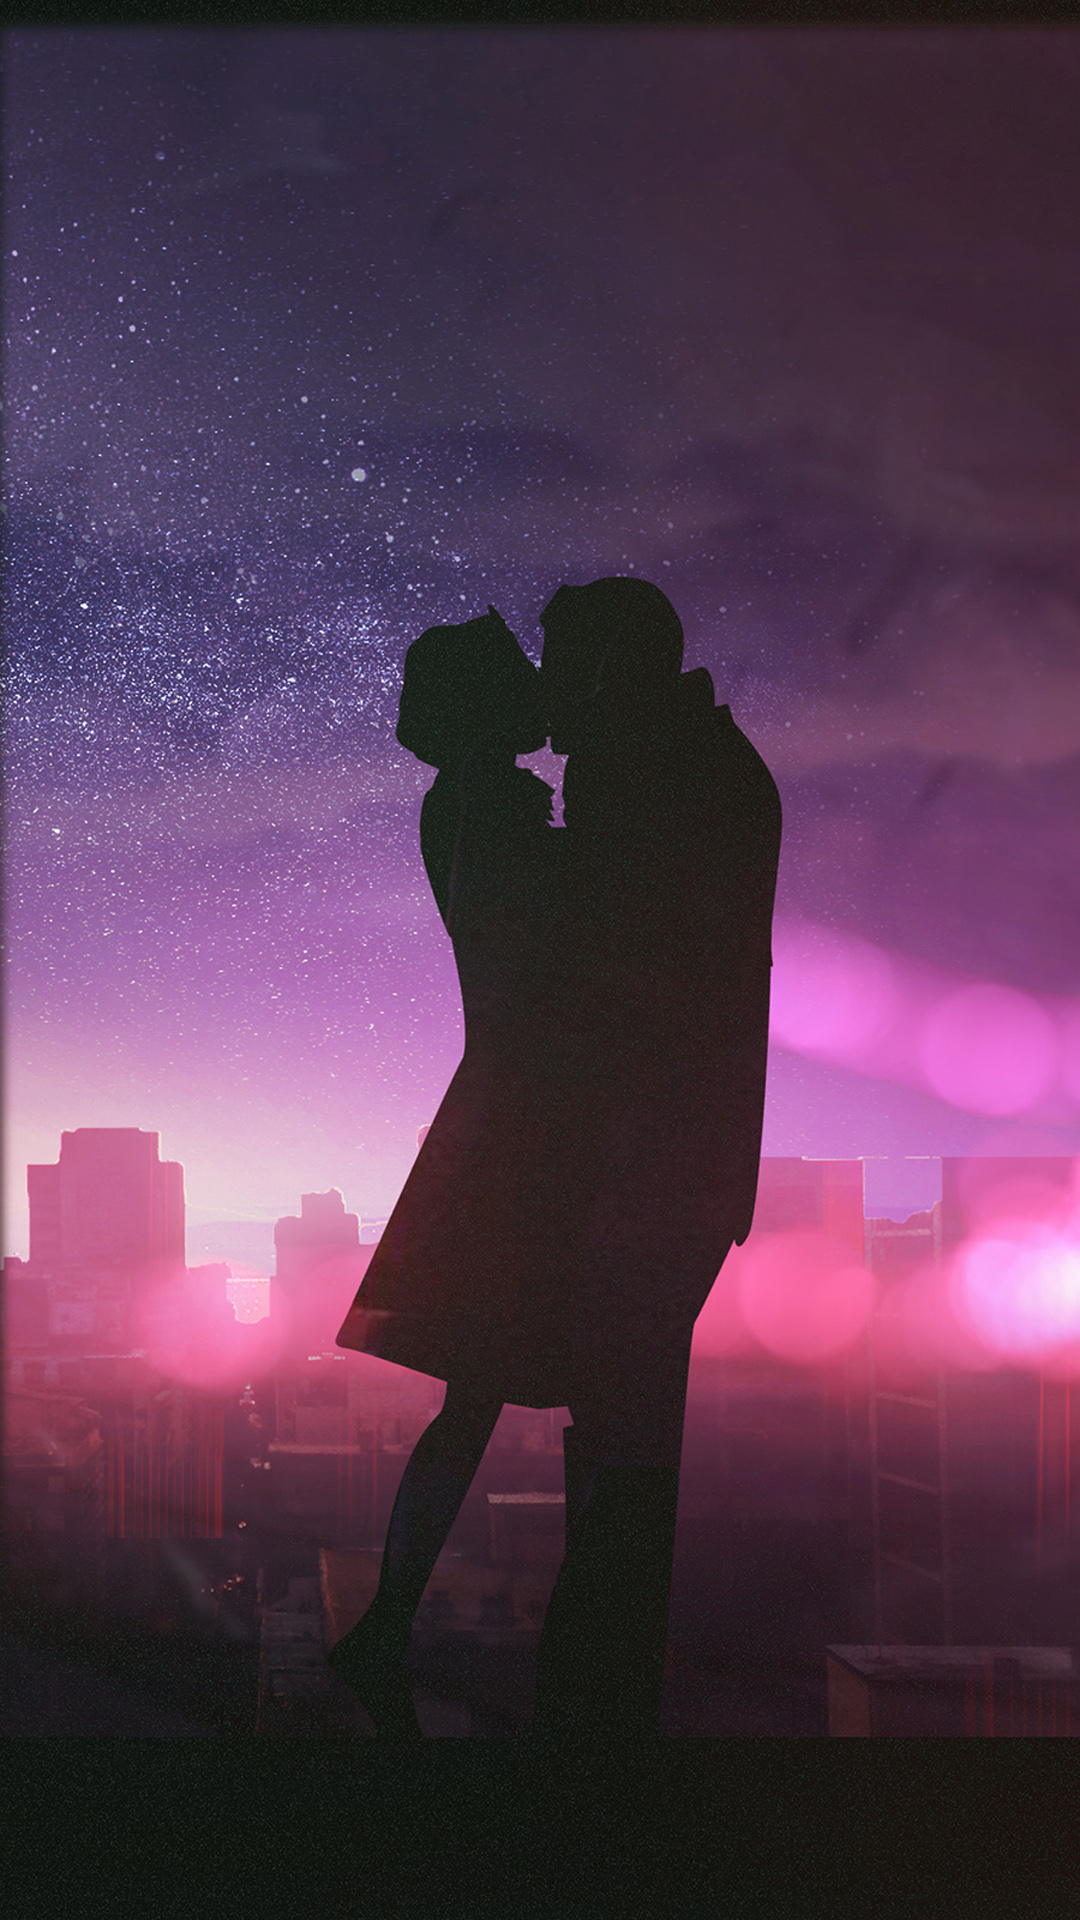 Romantic Love couple Wallpaper For Phone : Valentine couple Kissing